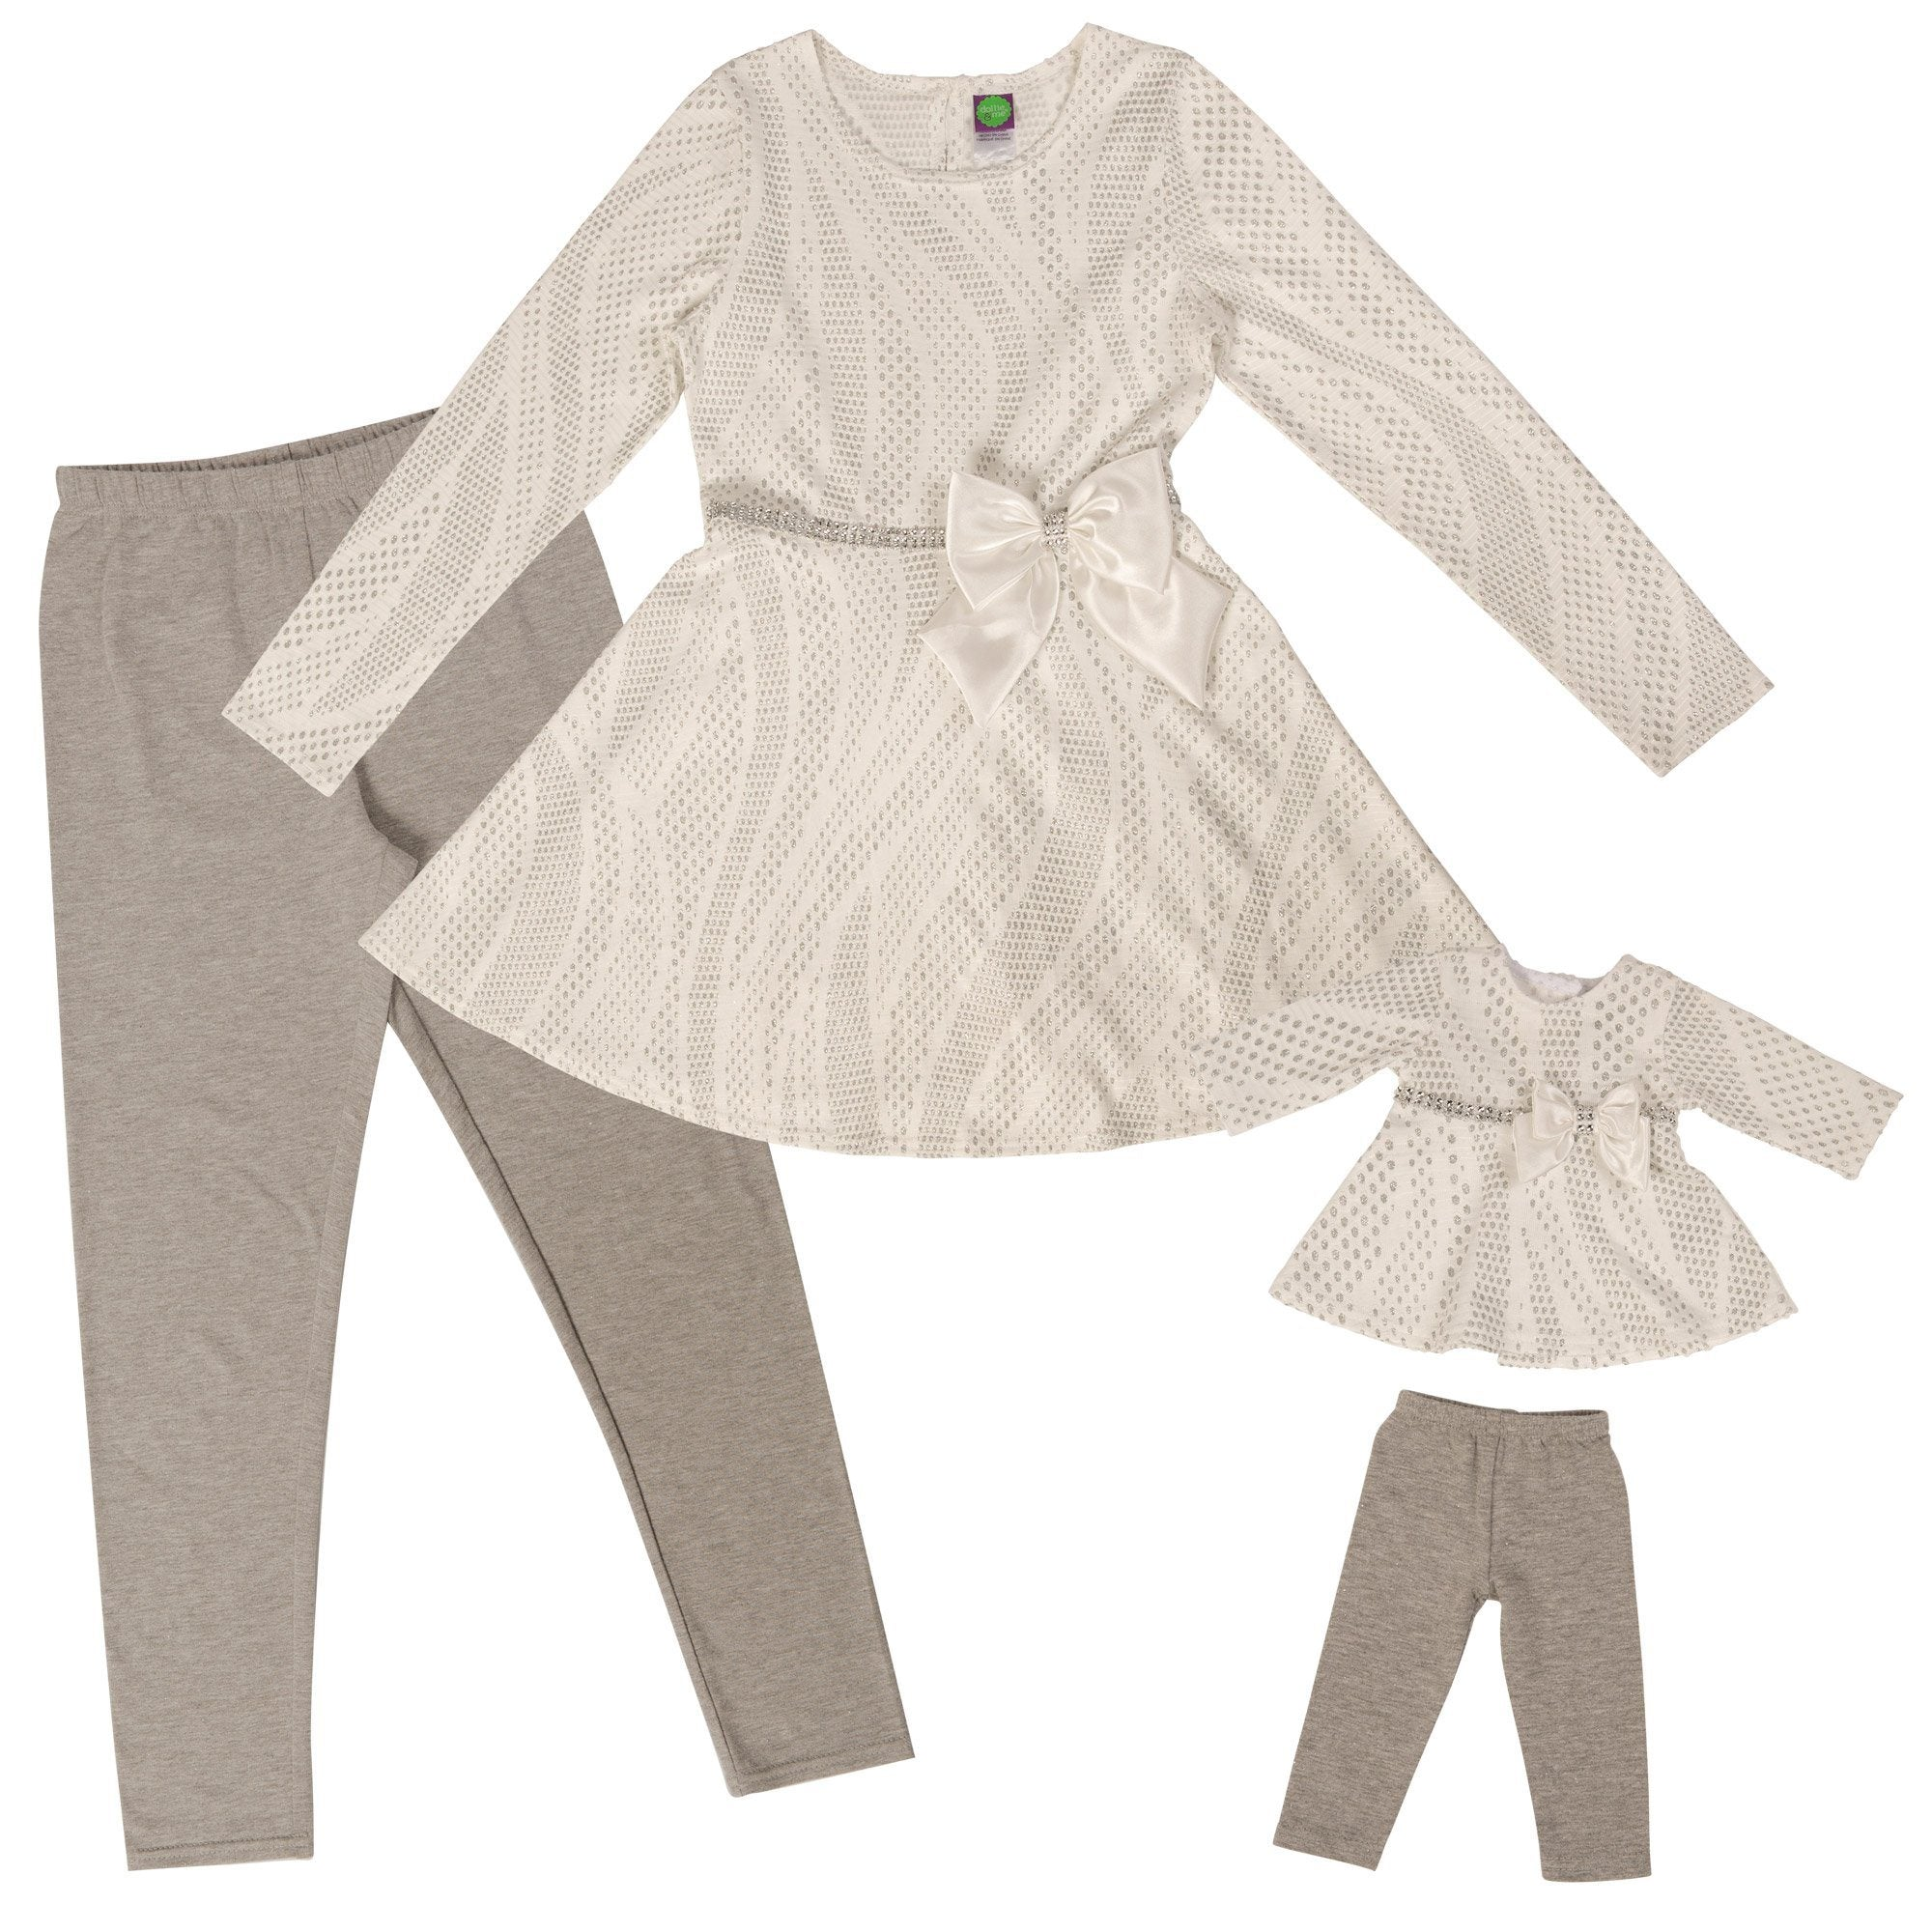 Girl and Doll Set: White and Silver Dress with Grey Leggings